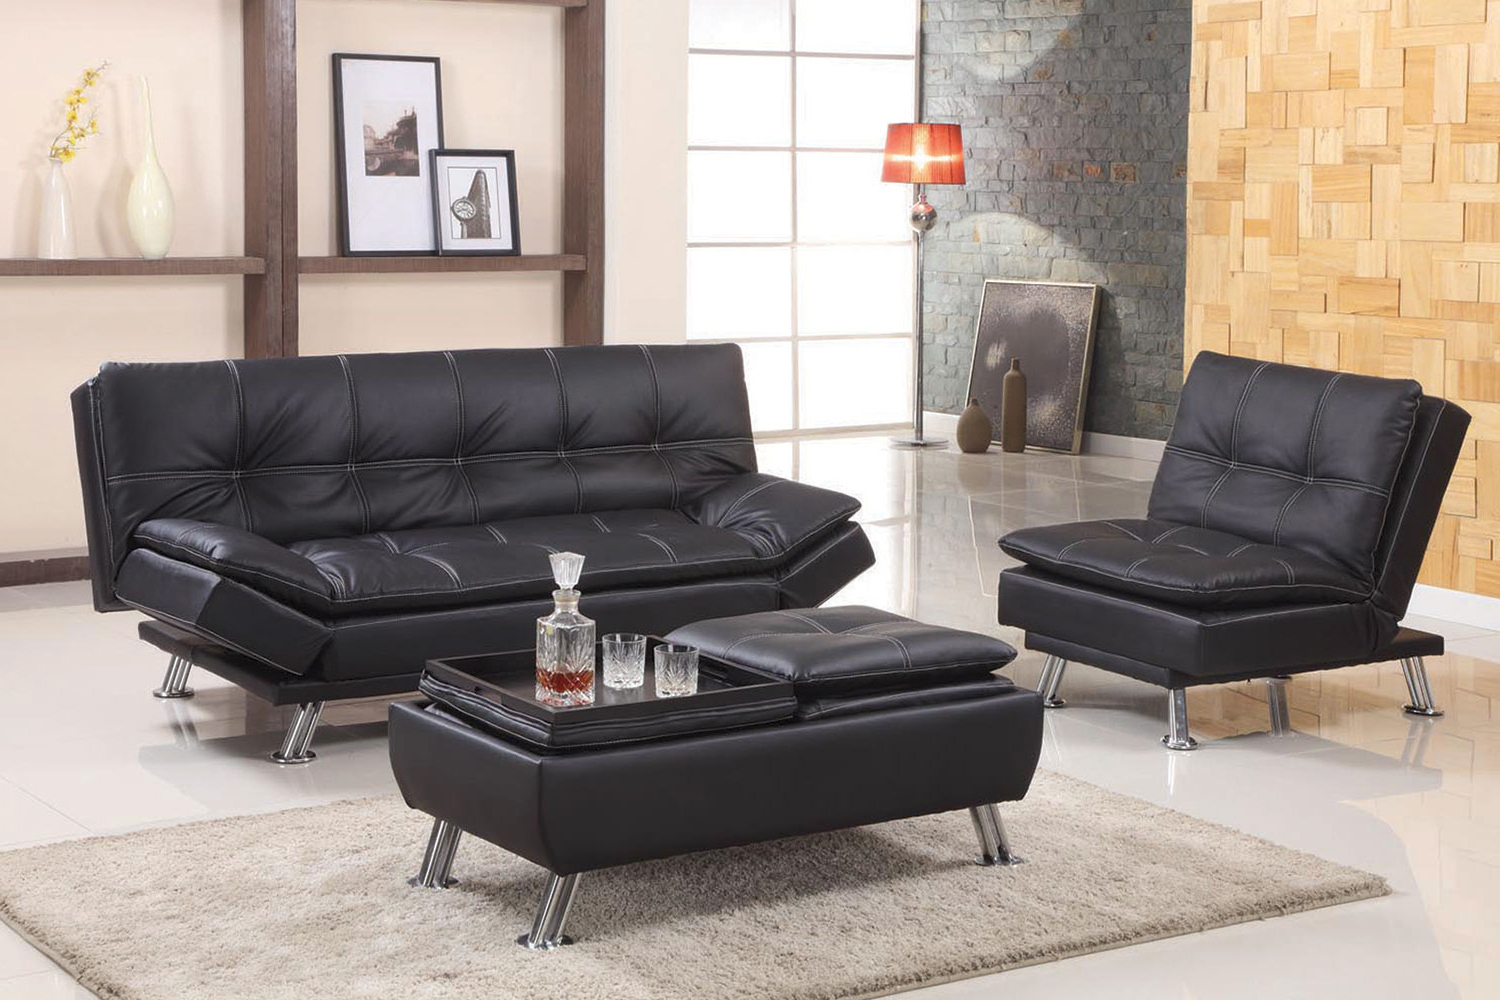 Well Liked Black Or Brown Adjustable Futon Sofa With Regard To Easton Small Space Sectional Futon Sofas (View 10 of 25)